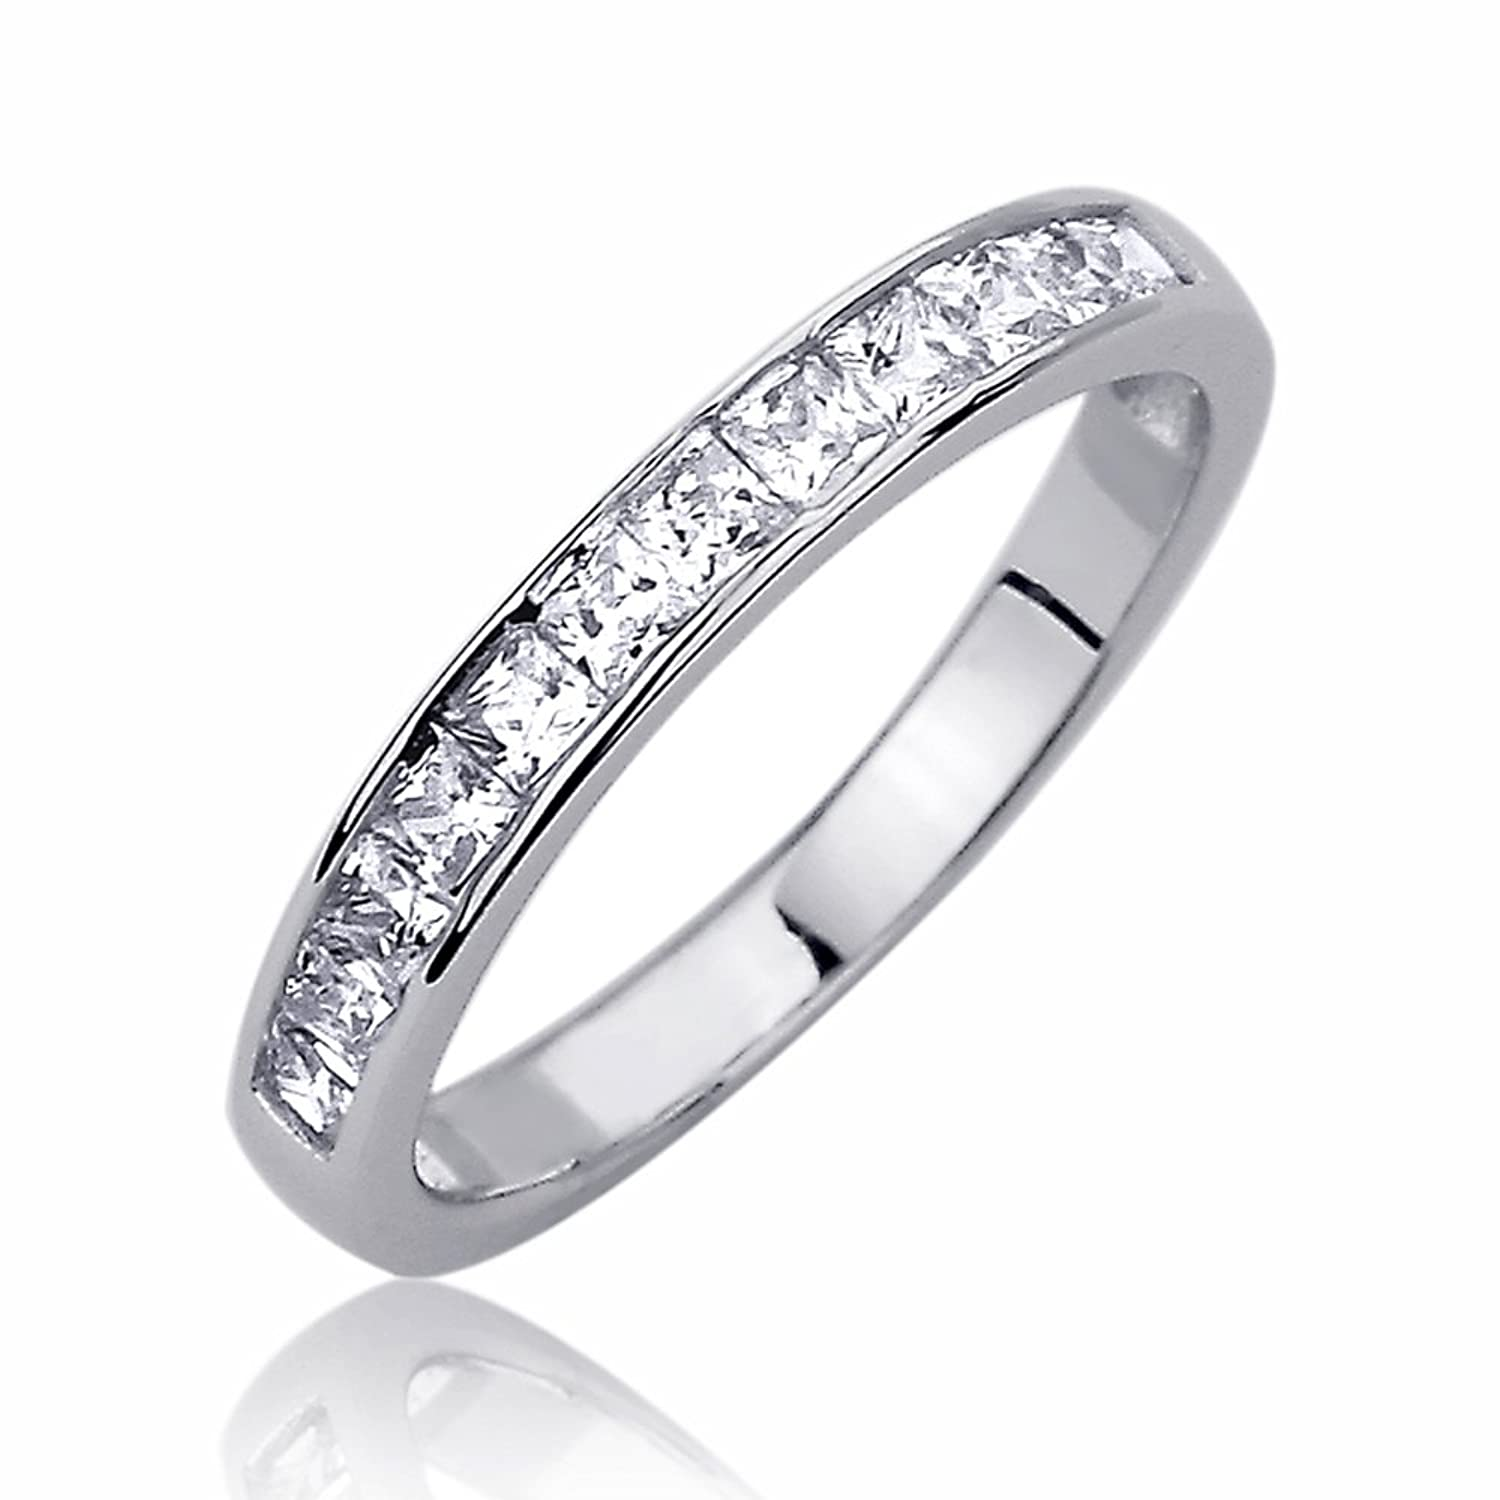 band media silver wedding ctw simulants engagement ring princess man bands set made rings plated cut sterling gold rose eternity diamond bridal